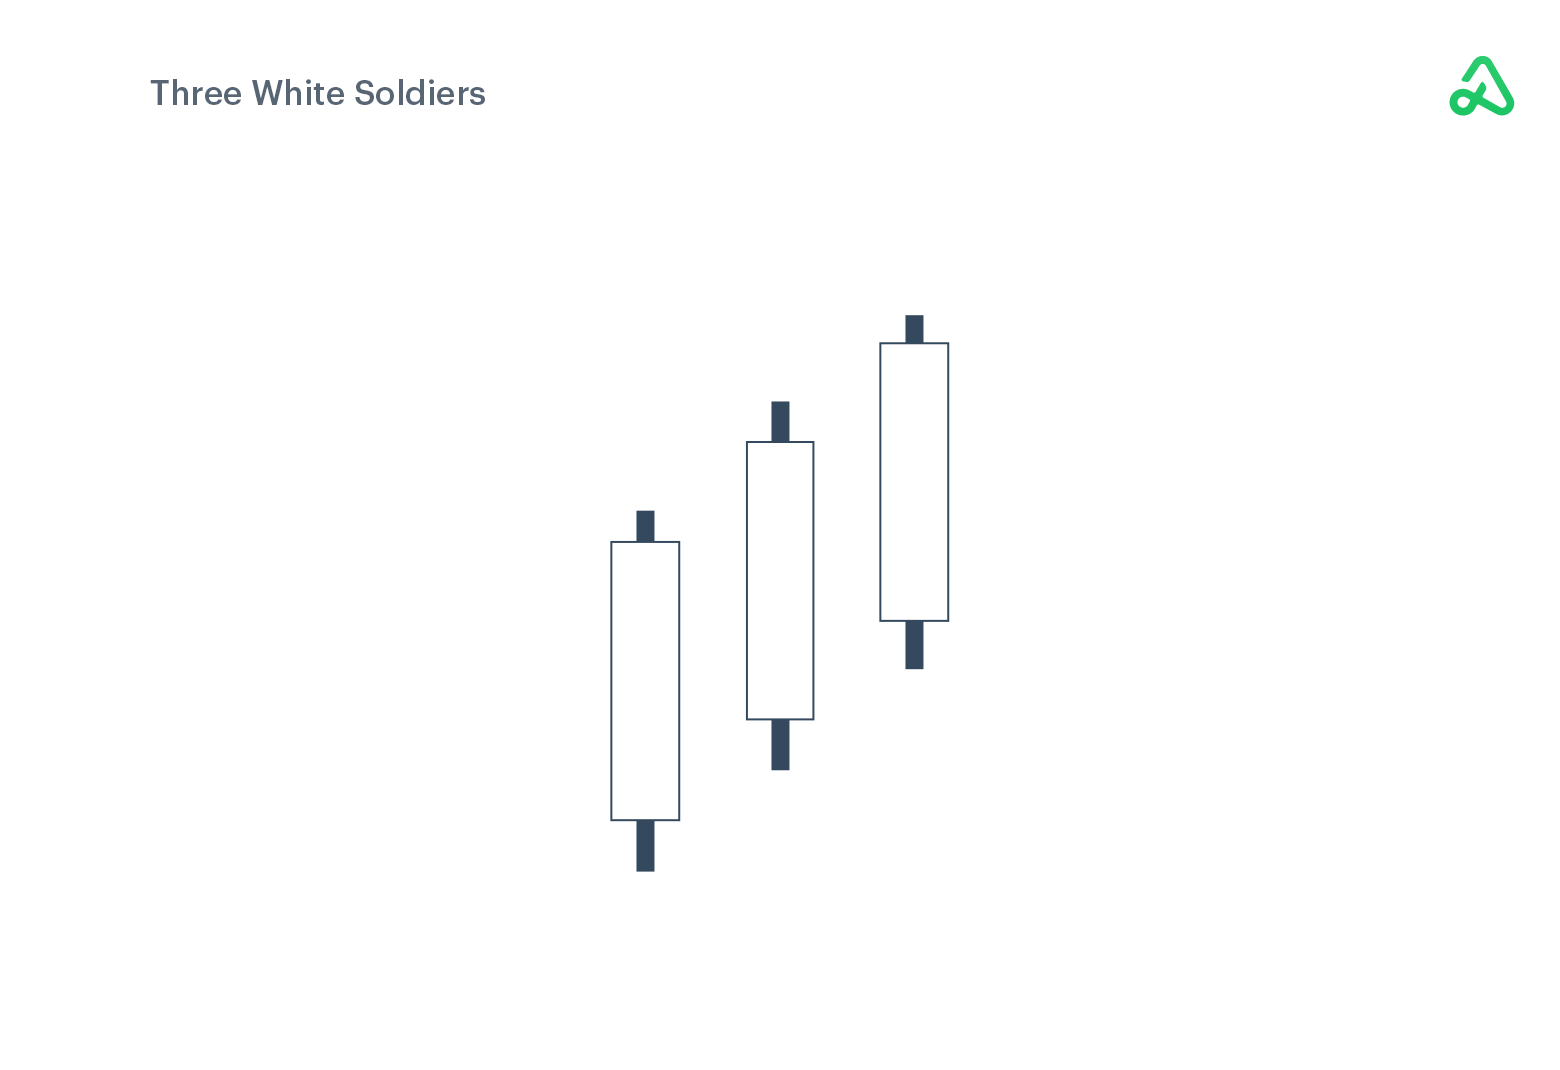 Three White Soldiers example image